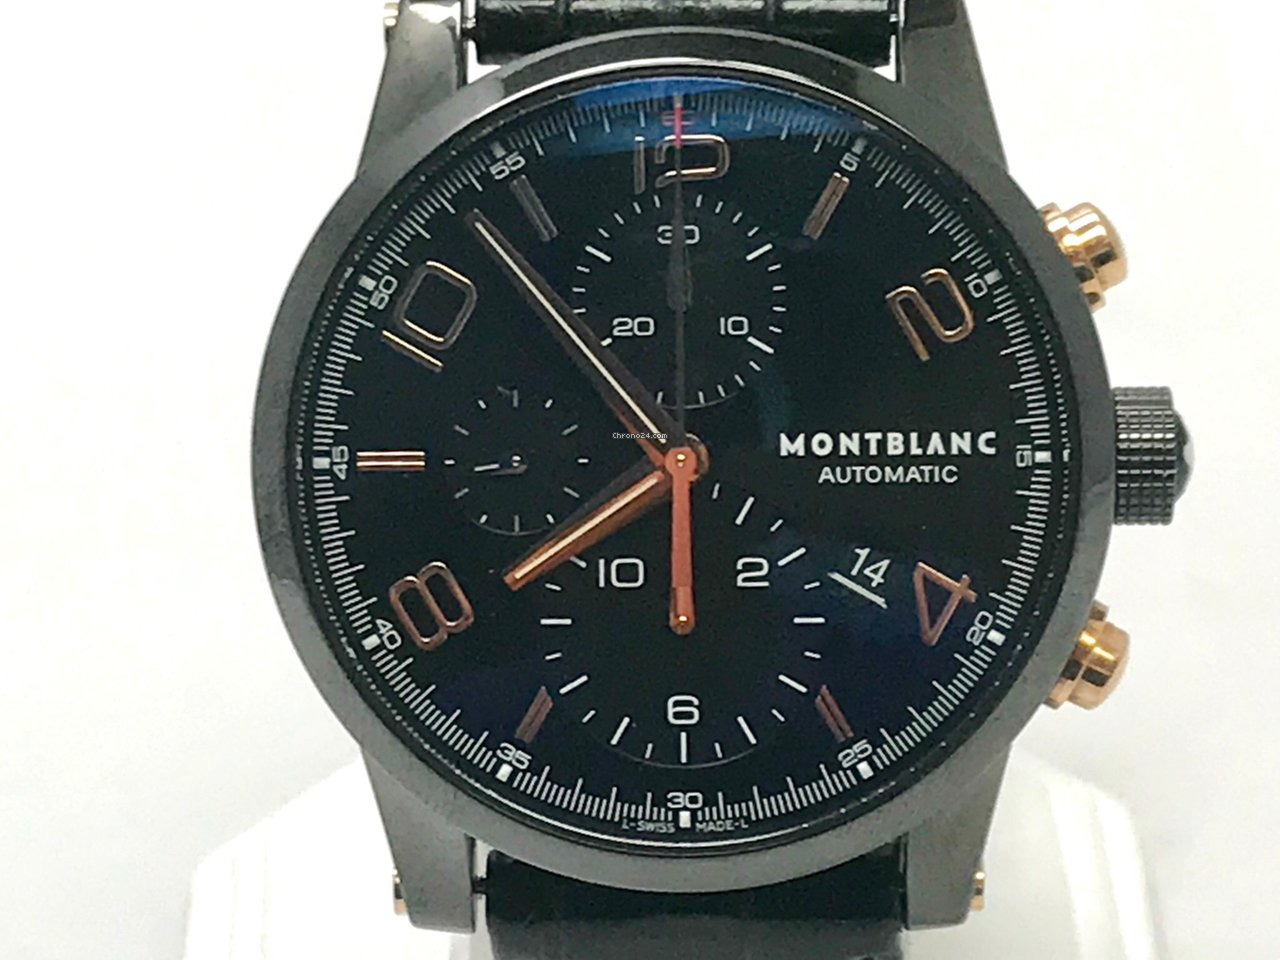 0c7eaa6b0 Montblanc Timewalker - all prices for Montblanc Timewalker watches on  Chrono24